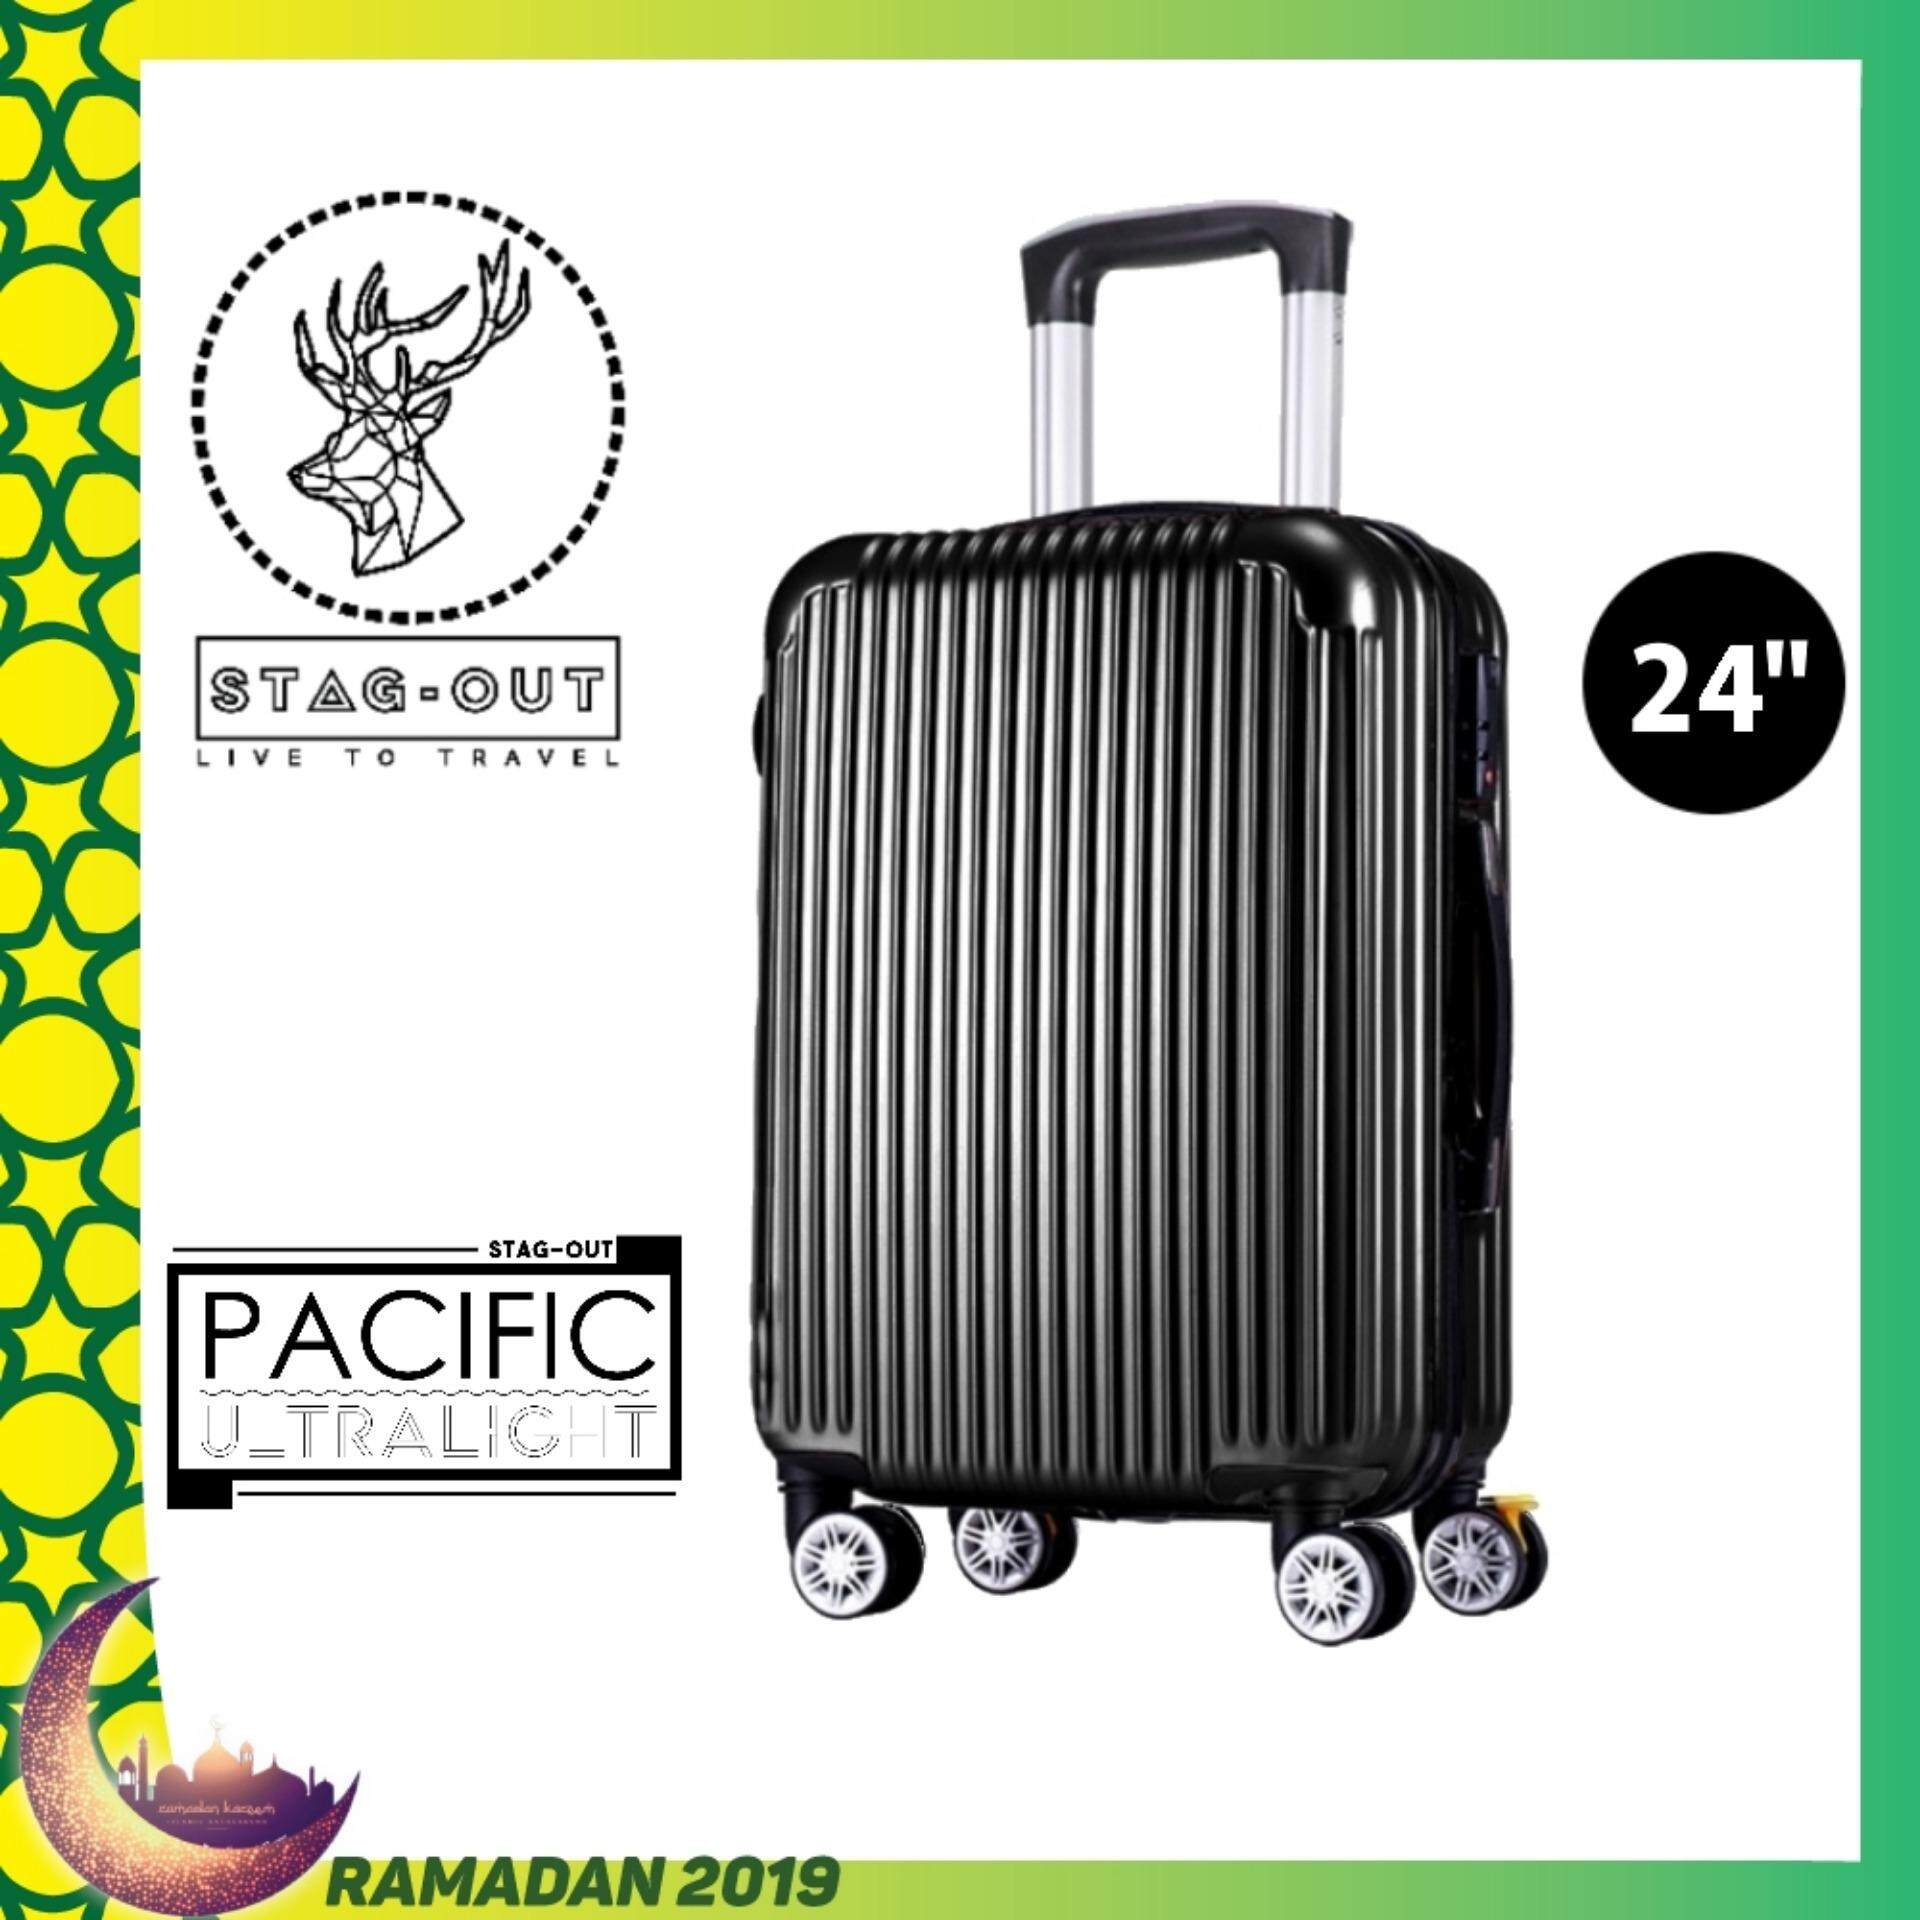 d30ccf0bc Raya 2019 -  Stag-Out  Pacific Ultralight ABS HardCase 24